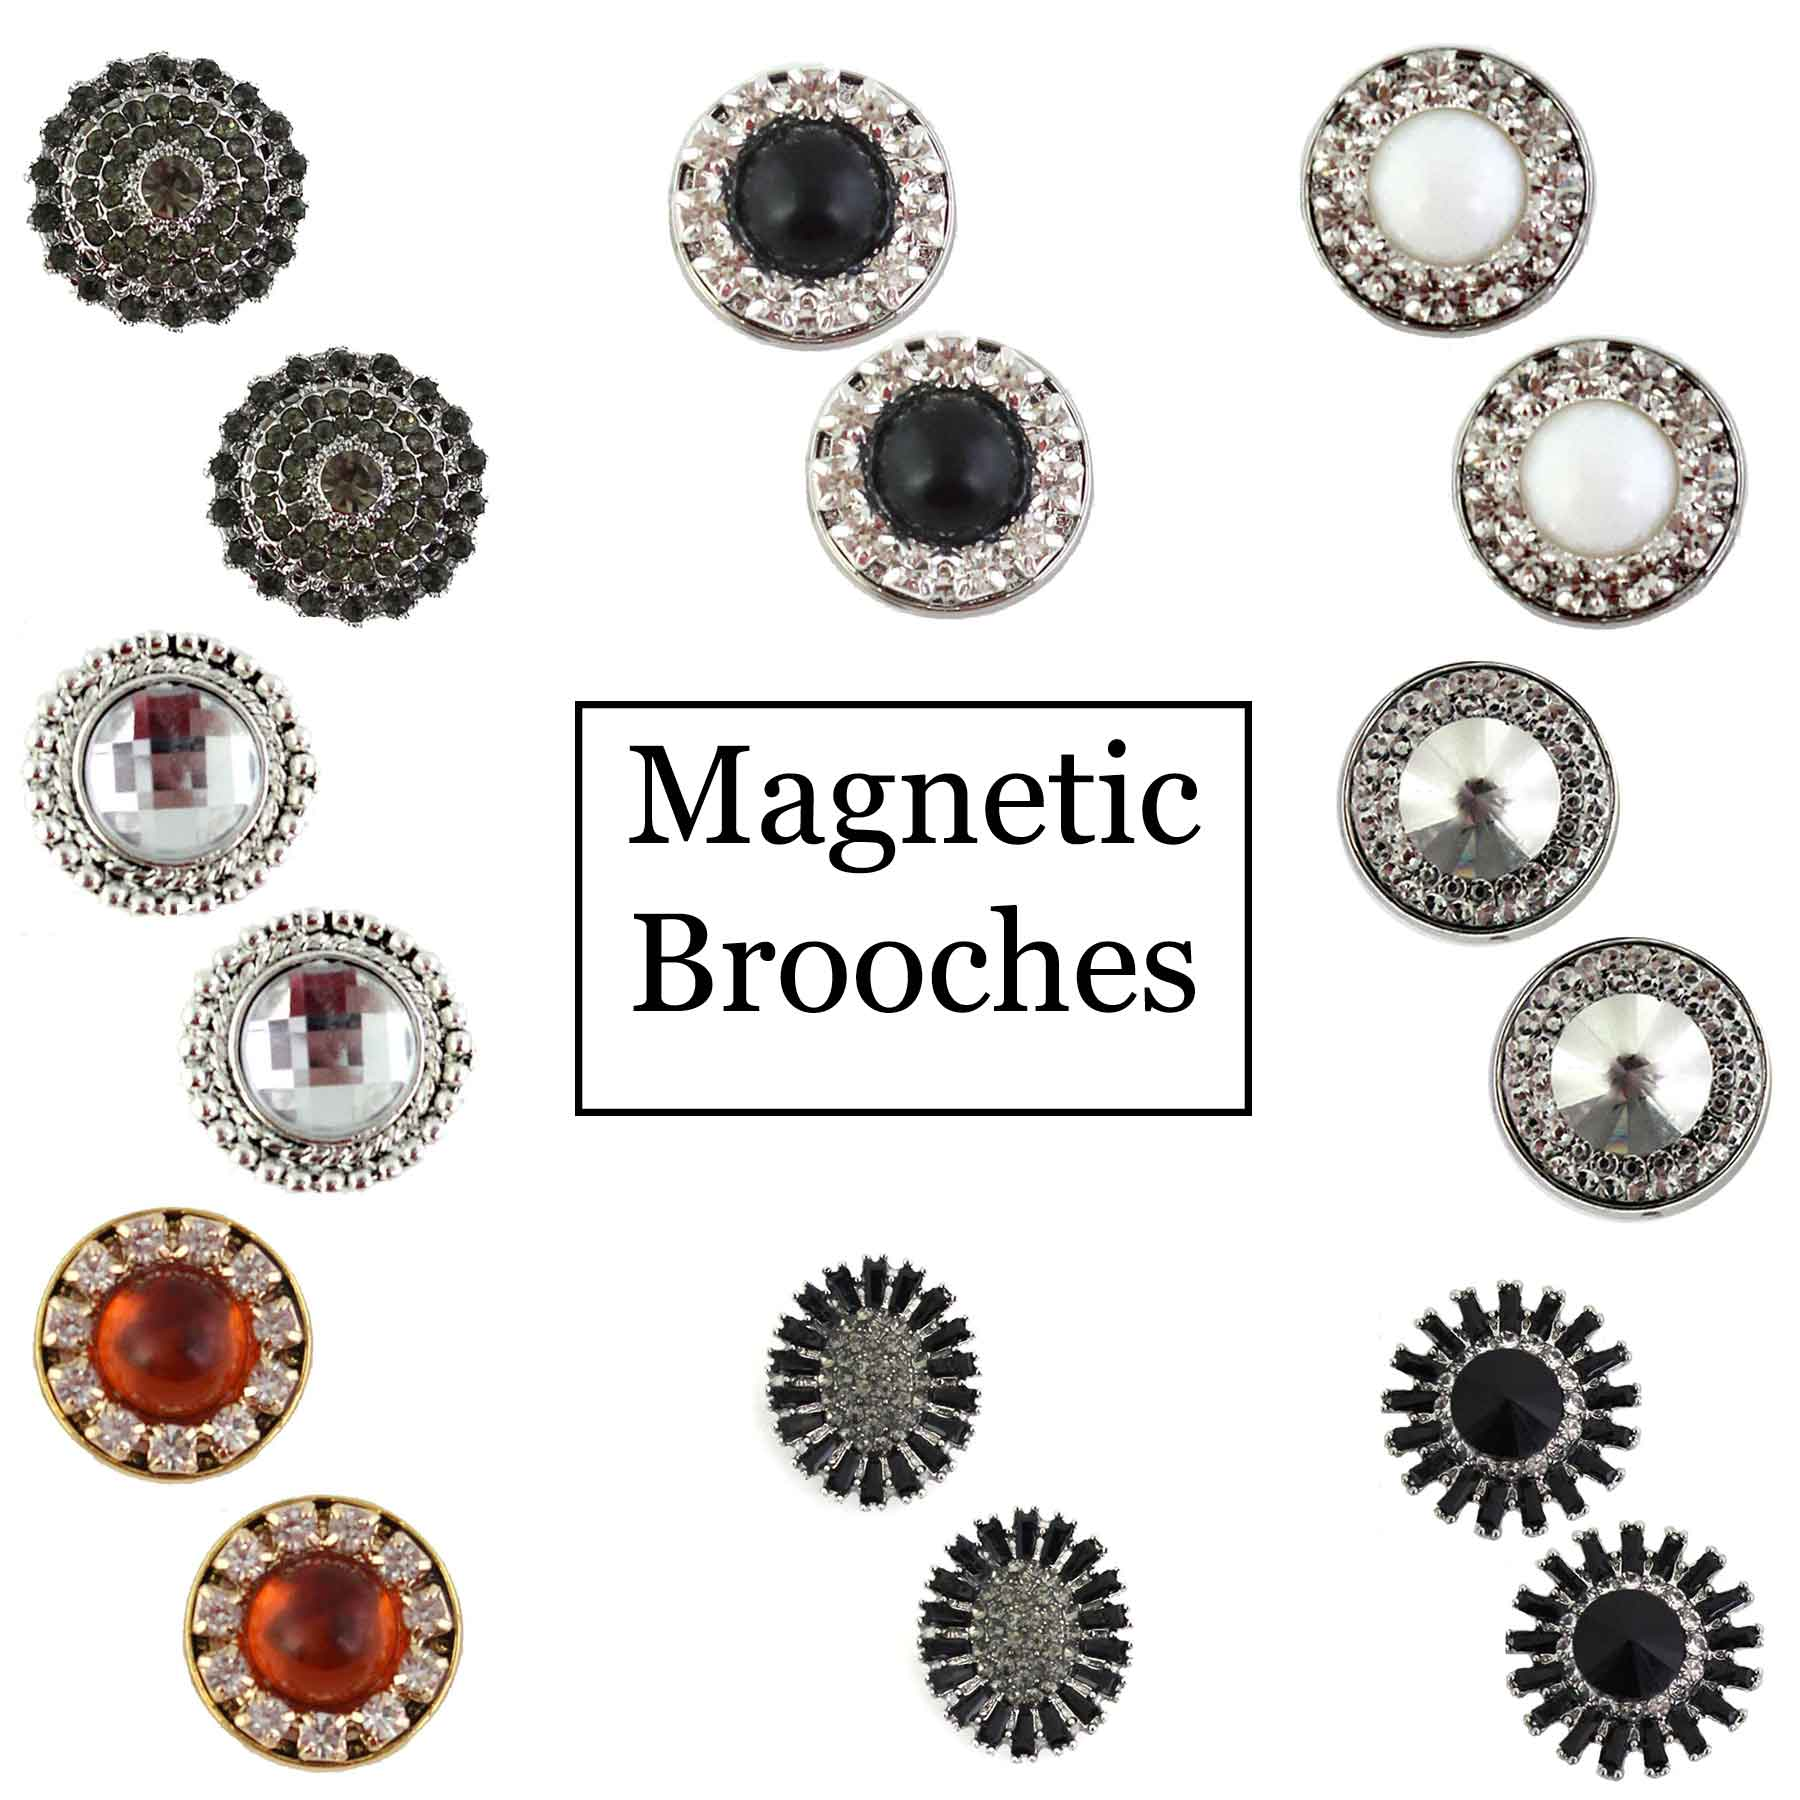 Magnetic Brooches - Small Double Sided